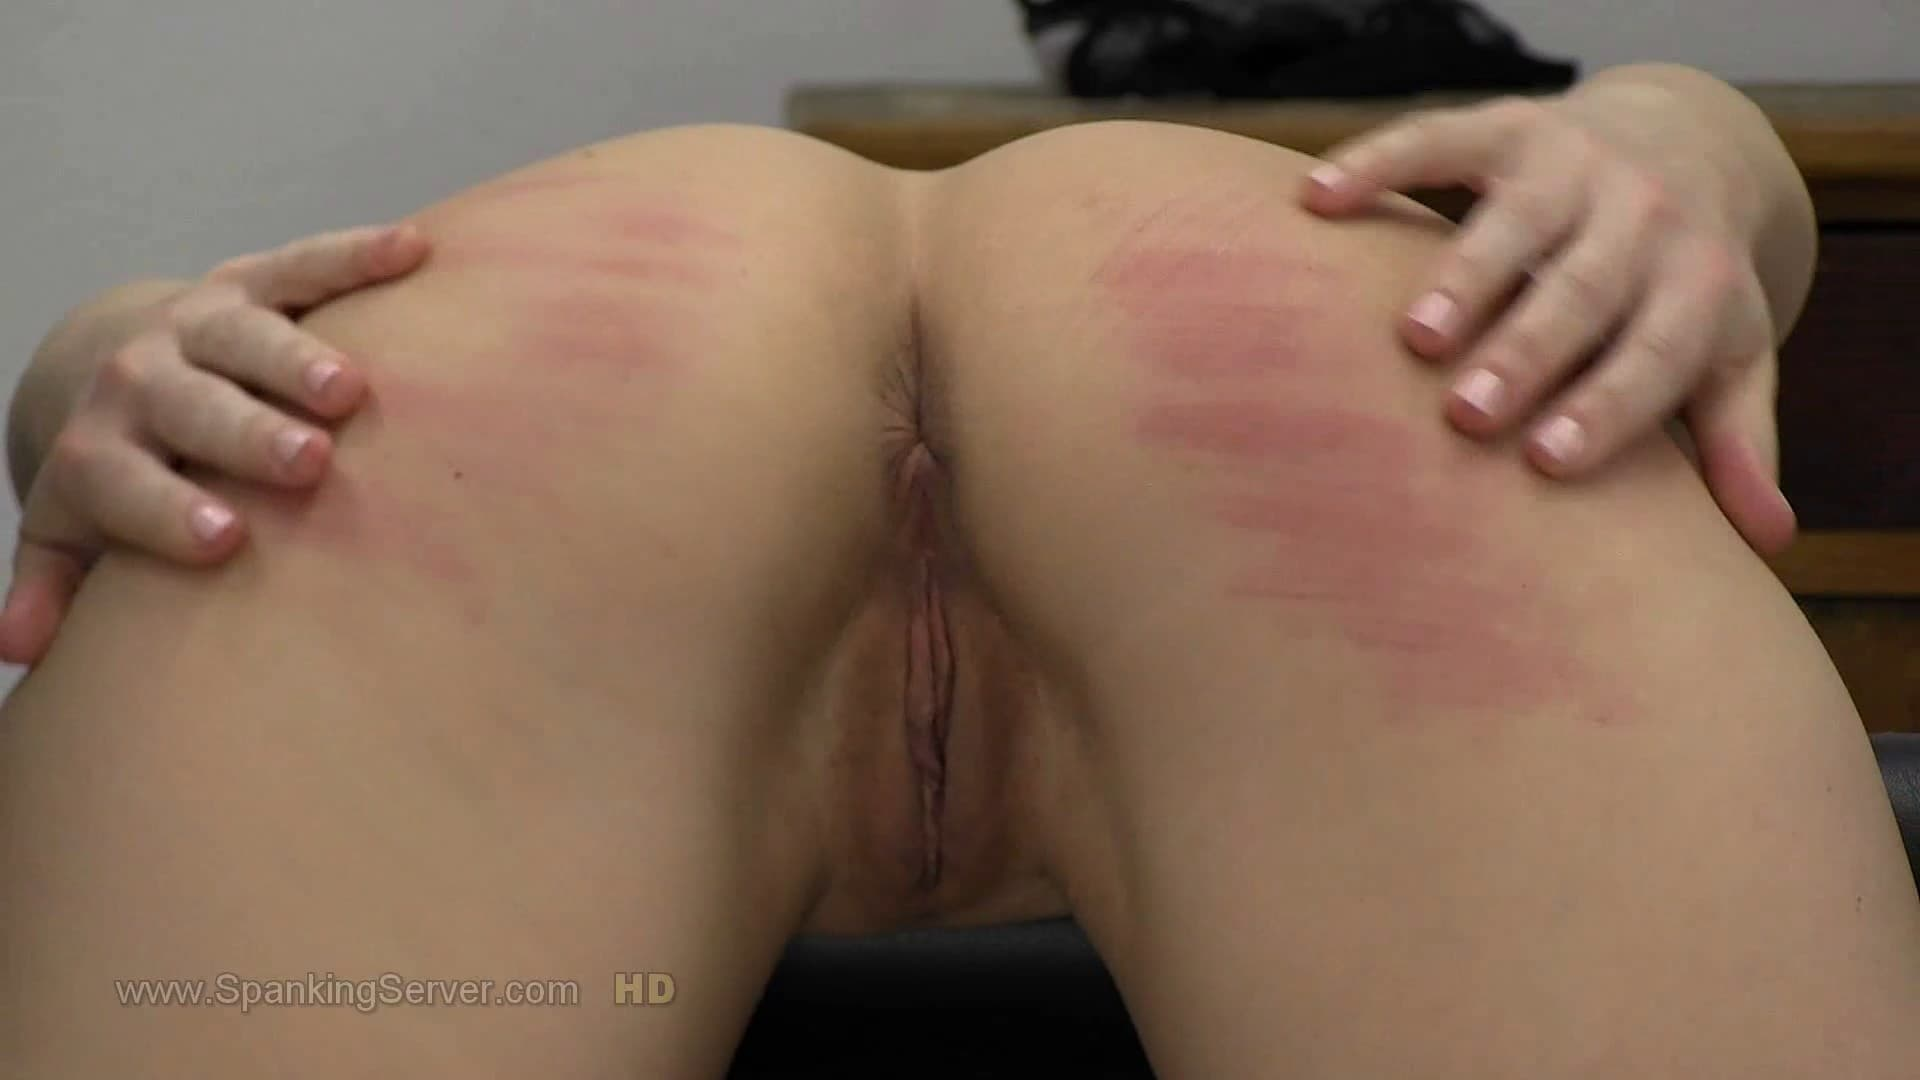 Spanking Server – MP4/Full HD – Sasha – 2021 – 08 Week